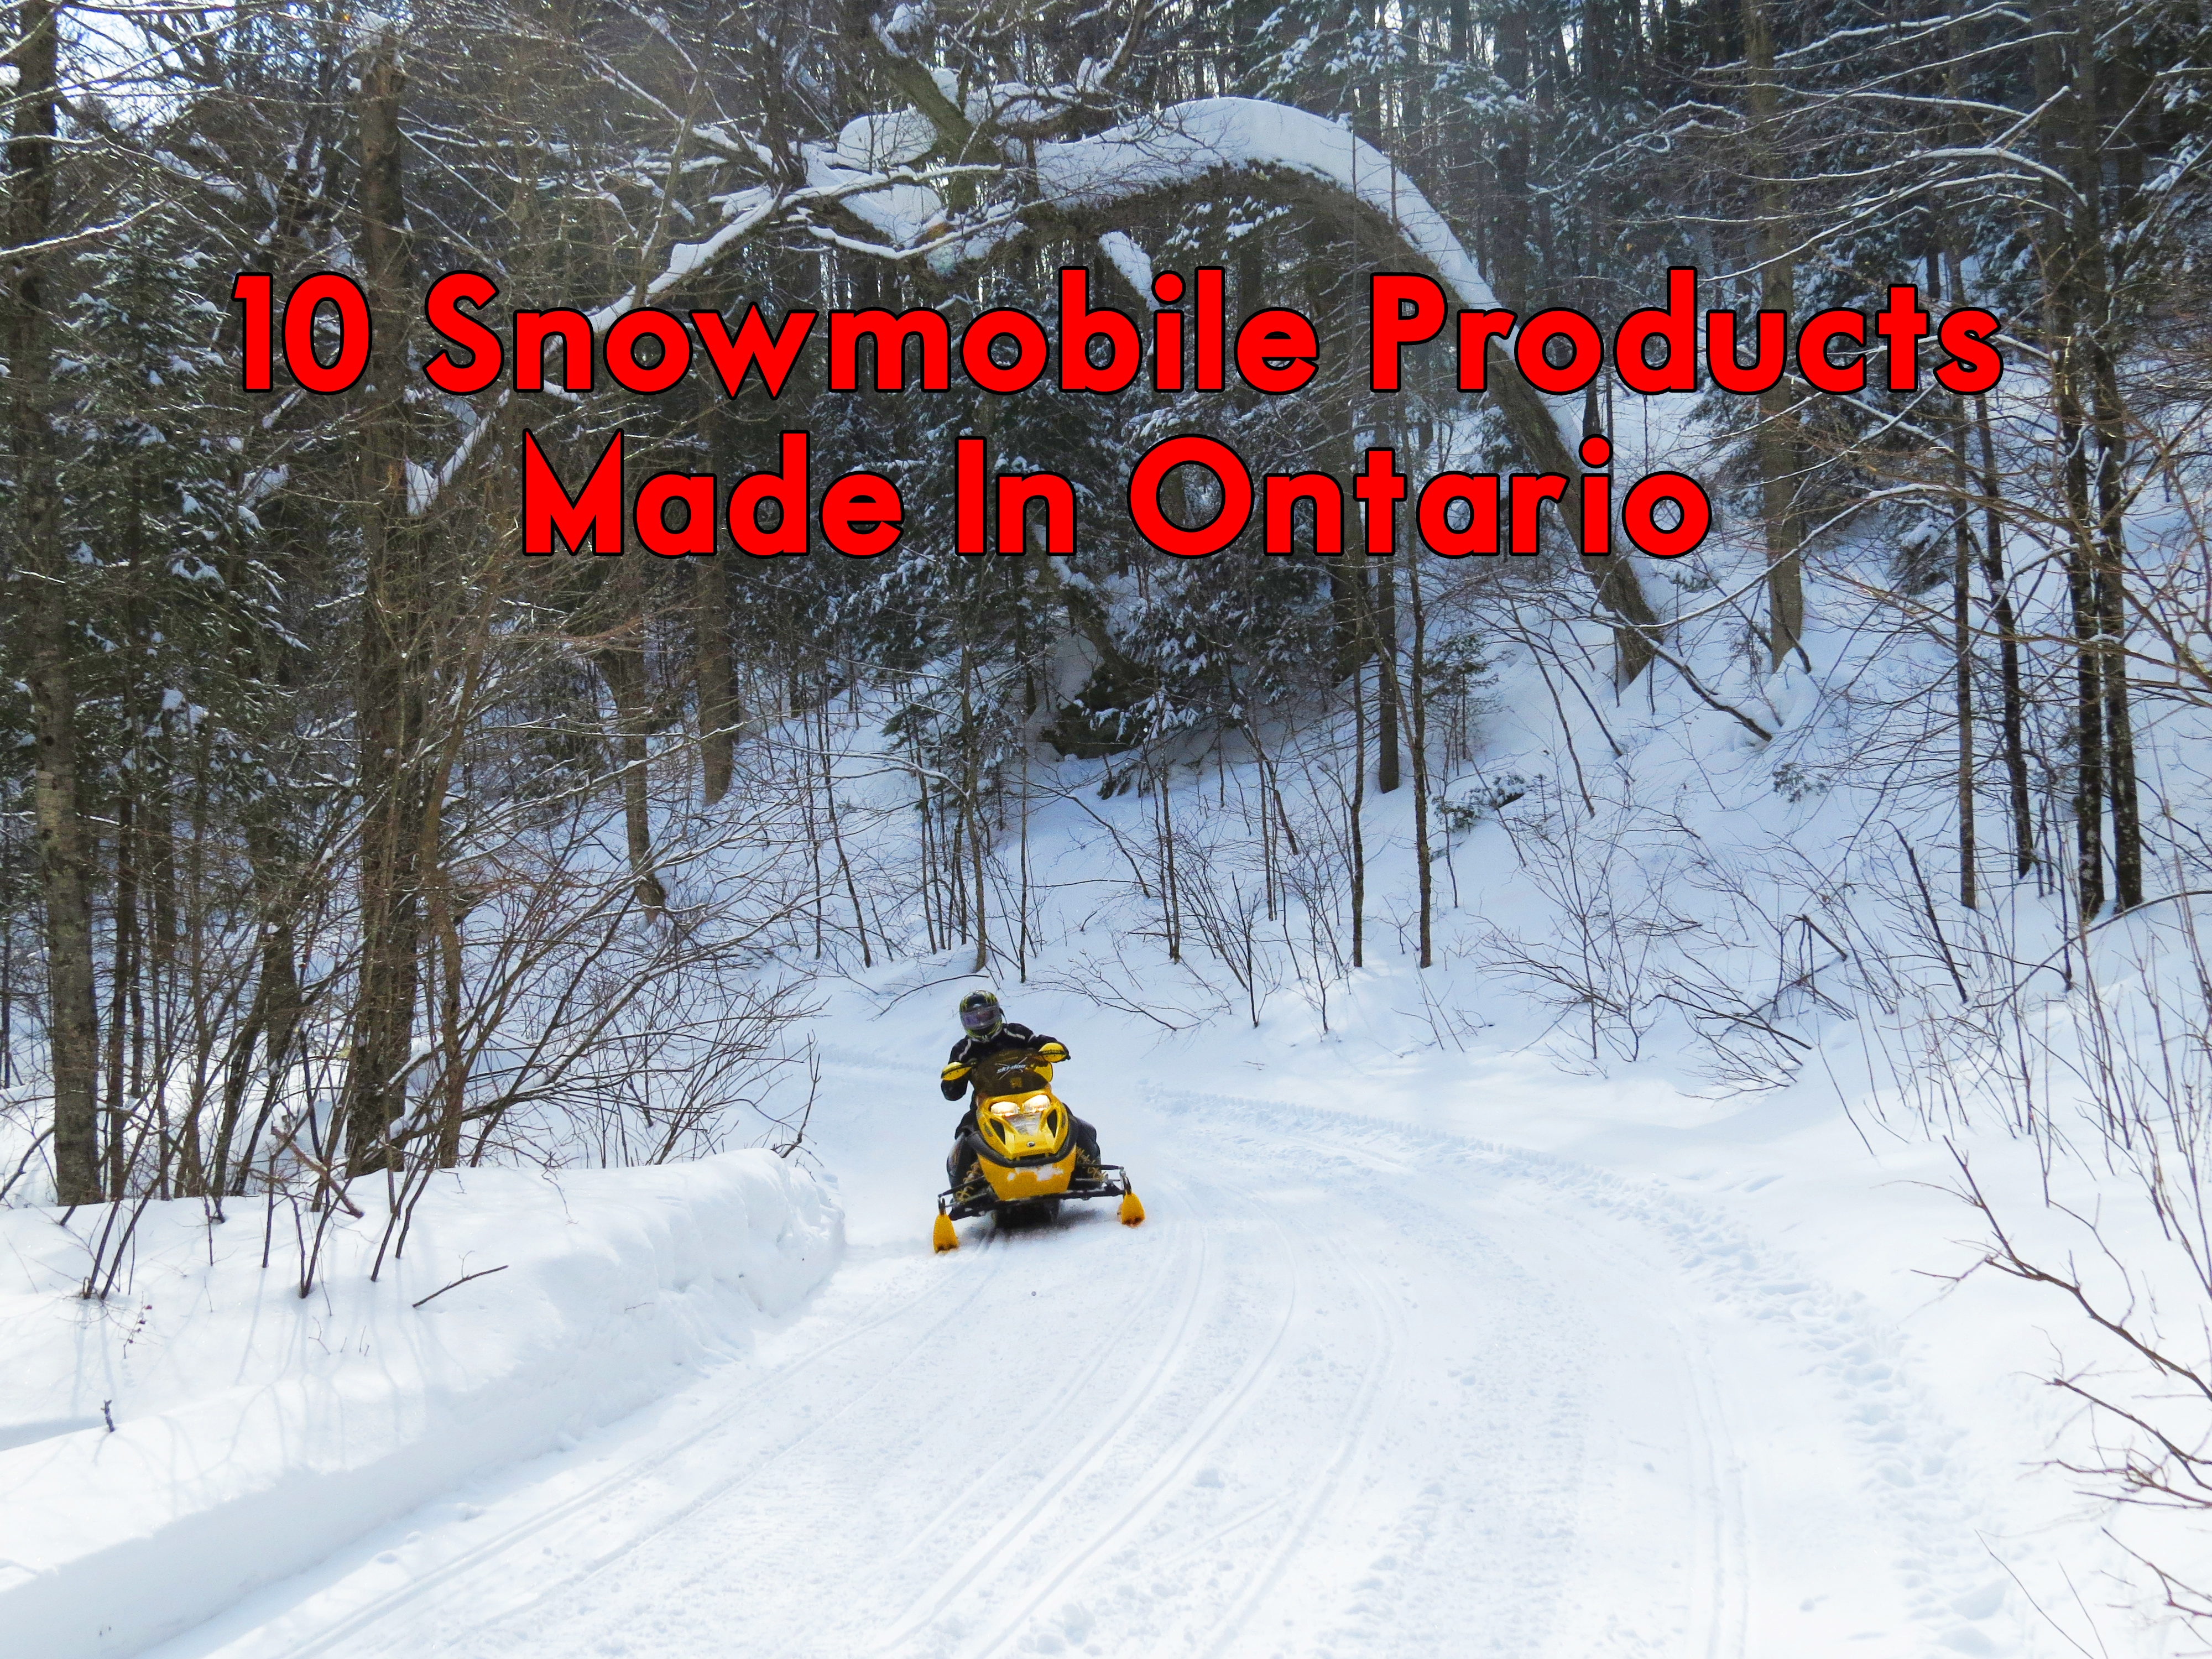 10 snowmobile products made in ontario 2